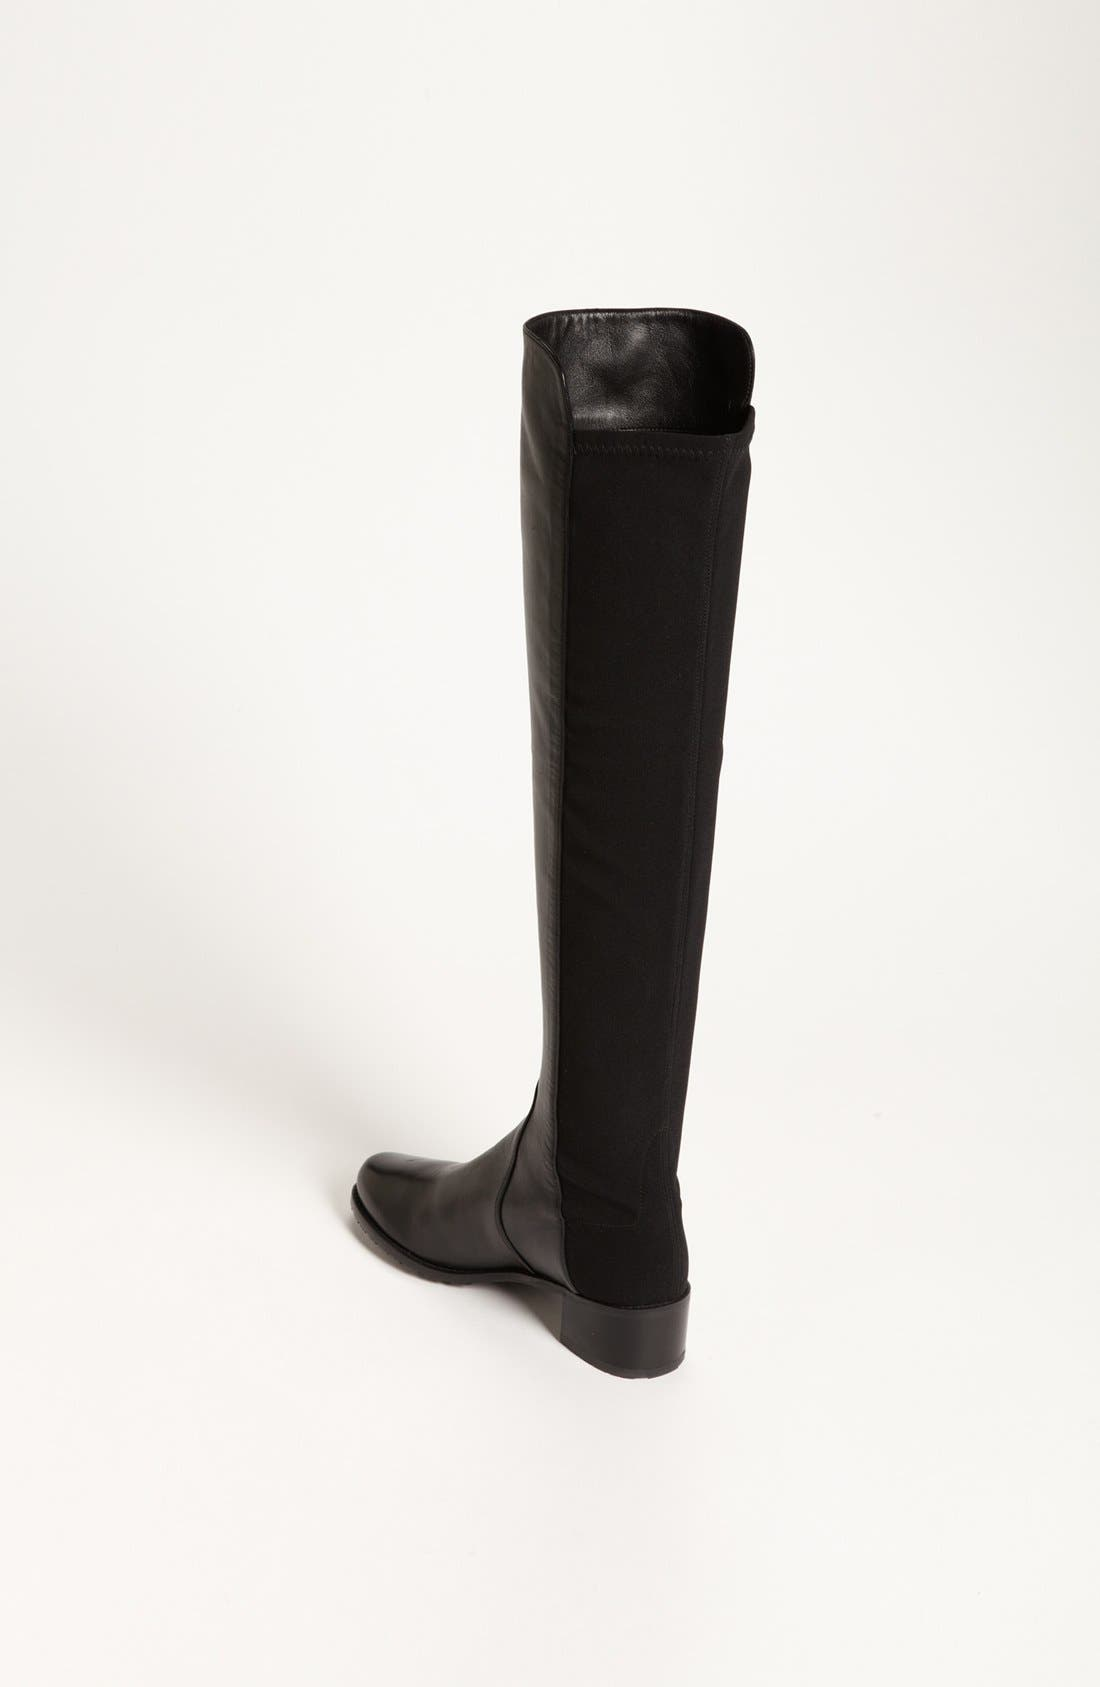 'Reserve' Over the Knee Boot,                             Alternate thumbnail 8, color,                             BLACK NAPPA